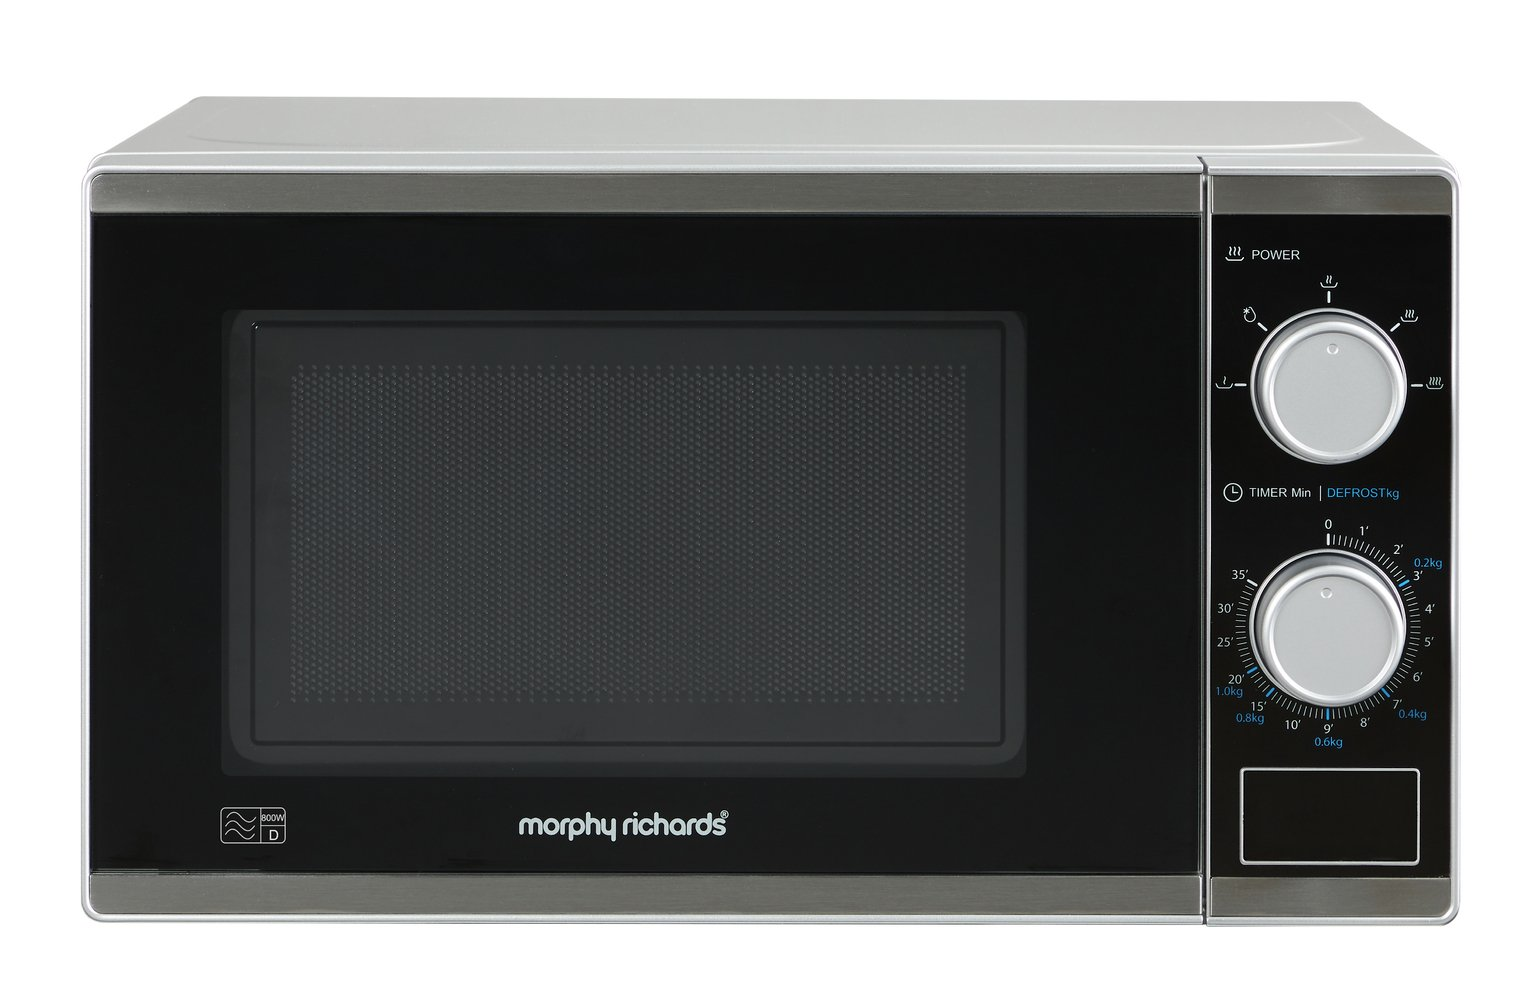 Morphy Richards 800W Standard Microwave - Silver